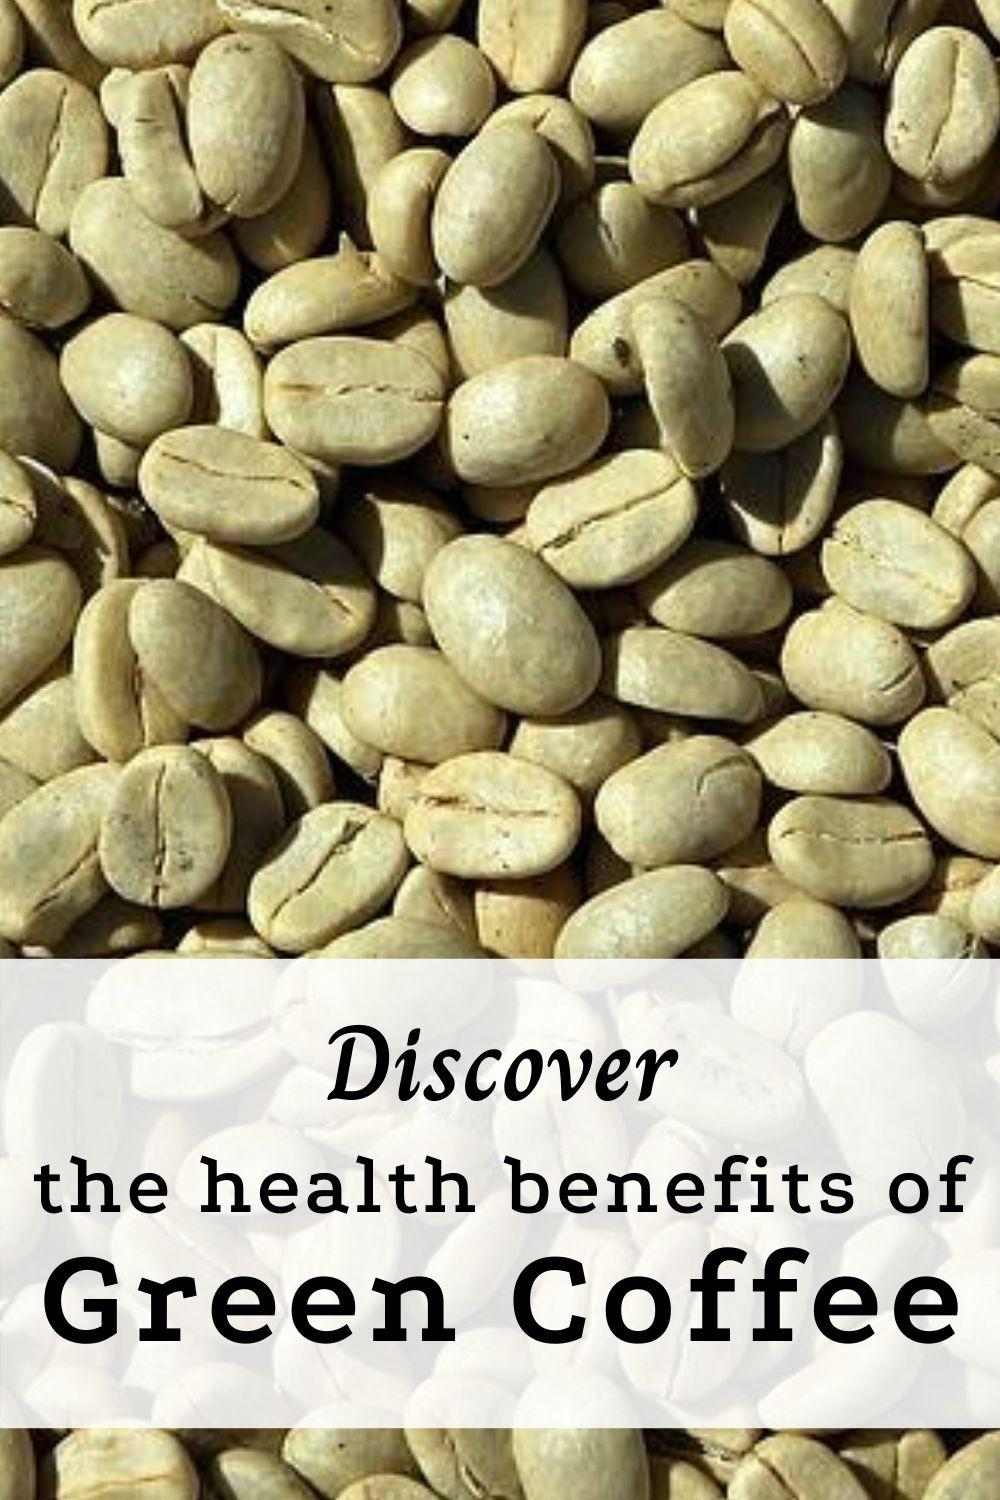 Discover the health benefits of green coffee